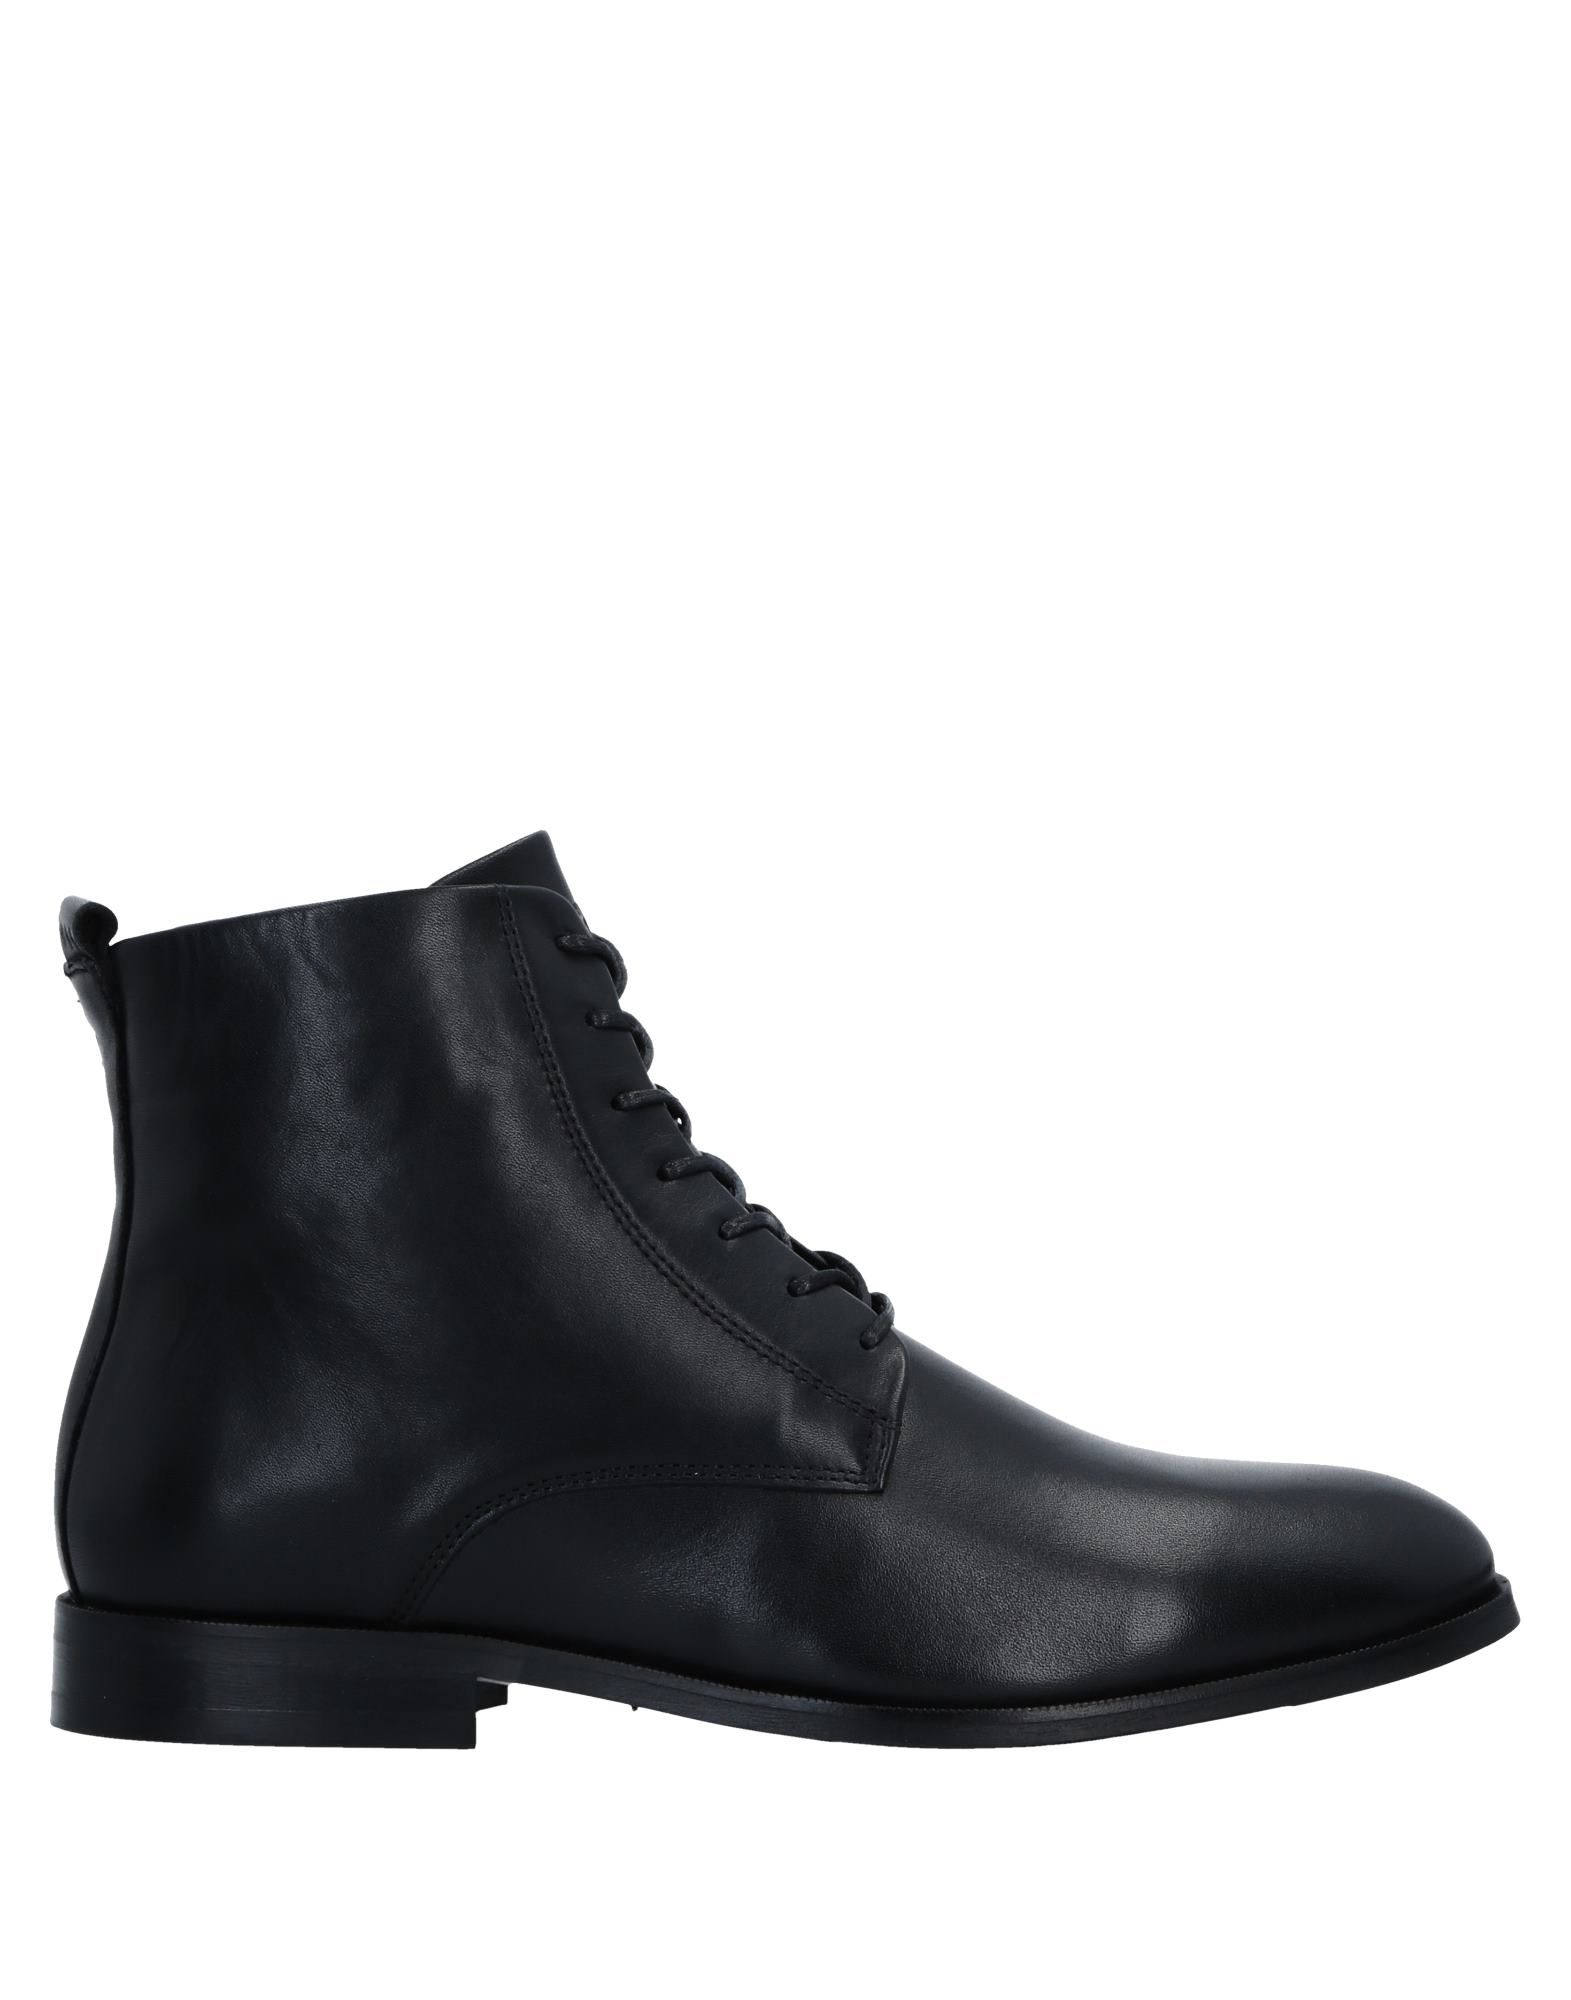 ROYAL REPUBLIQ Boots in Black